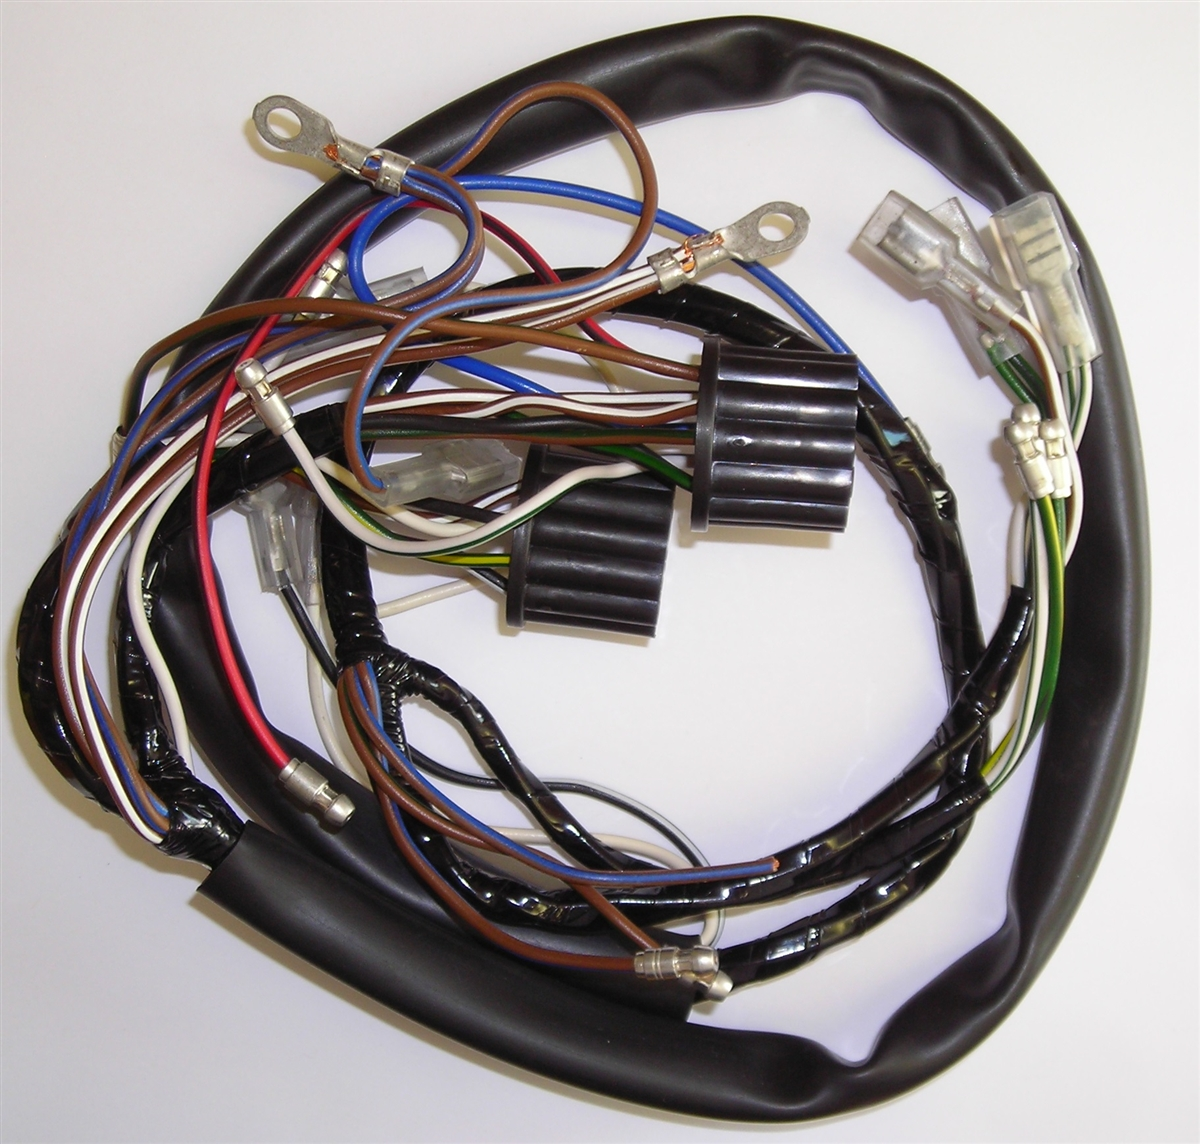 MC123PP 2?1374673704 motorcycle wiring harness wiring harness for motorcycles at crackthecode.co